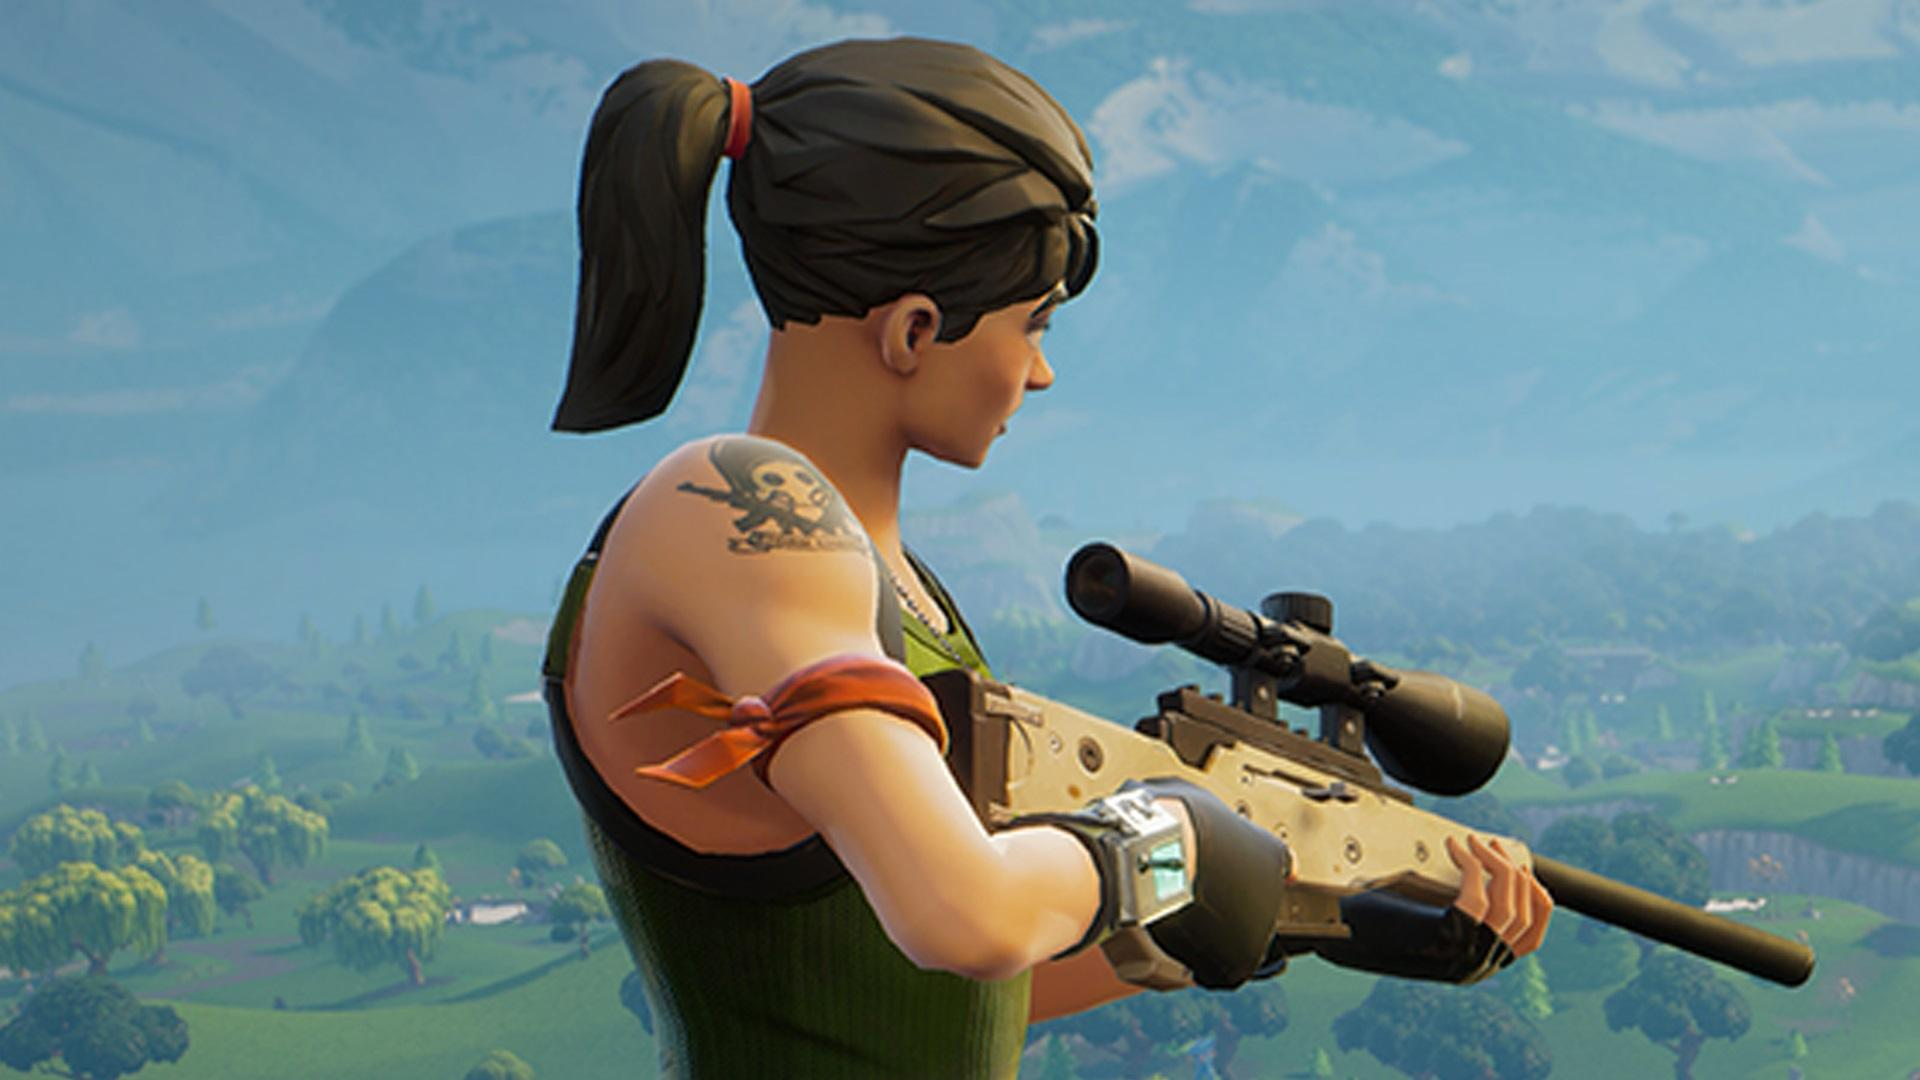 1920x1080 How To Revive Players (And Not Get Killed) In 'Fortnite: Battle Royale'